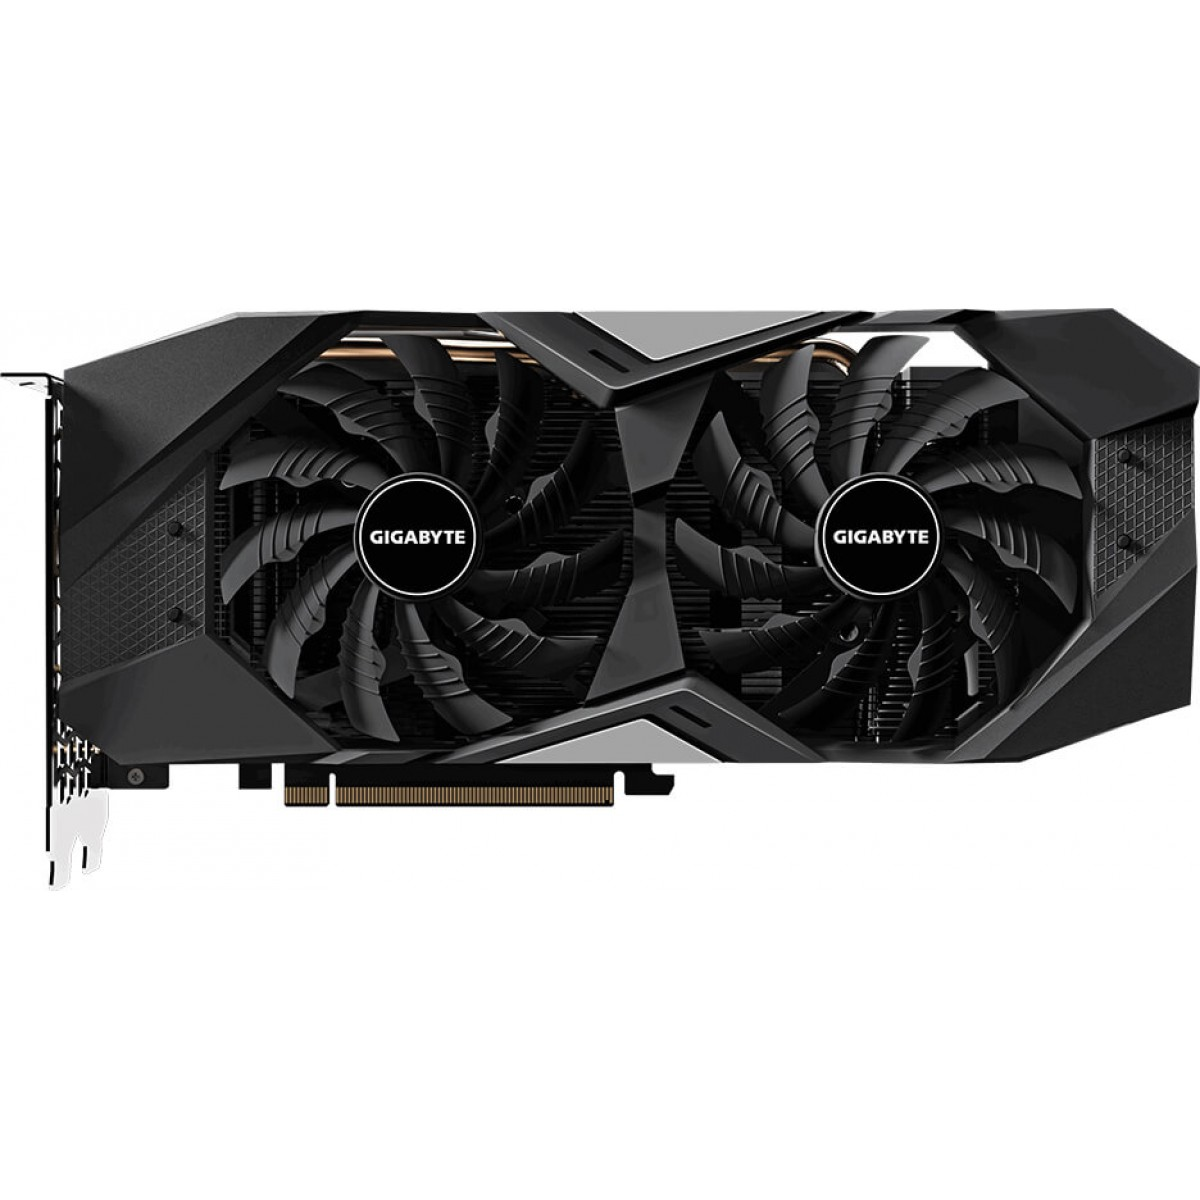 Placa de Vídeo Gigabyte GeForce RTX 2060 Super Windforce OC Dual, 8GB GDDR6, 256Bit, GV-N206SWF2OC-8GD